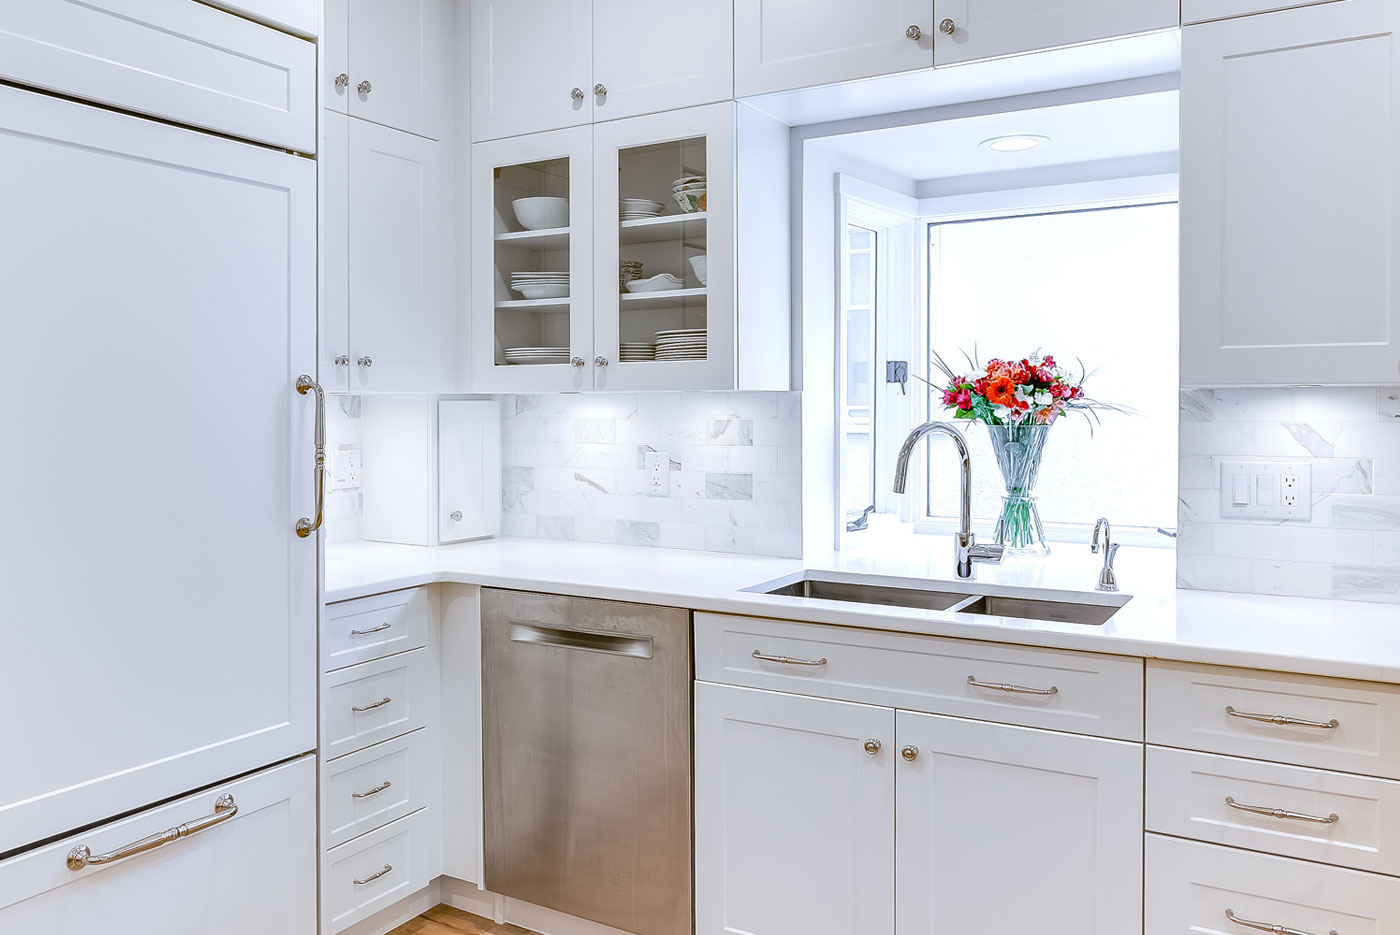 Light Pearl Kitchen cabinets by Superior Cabinets